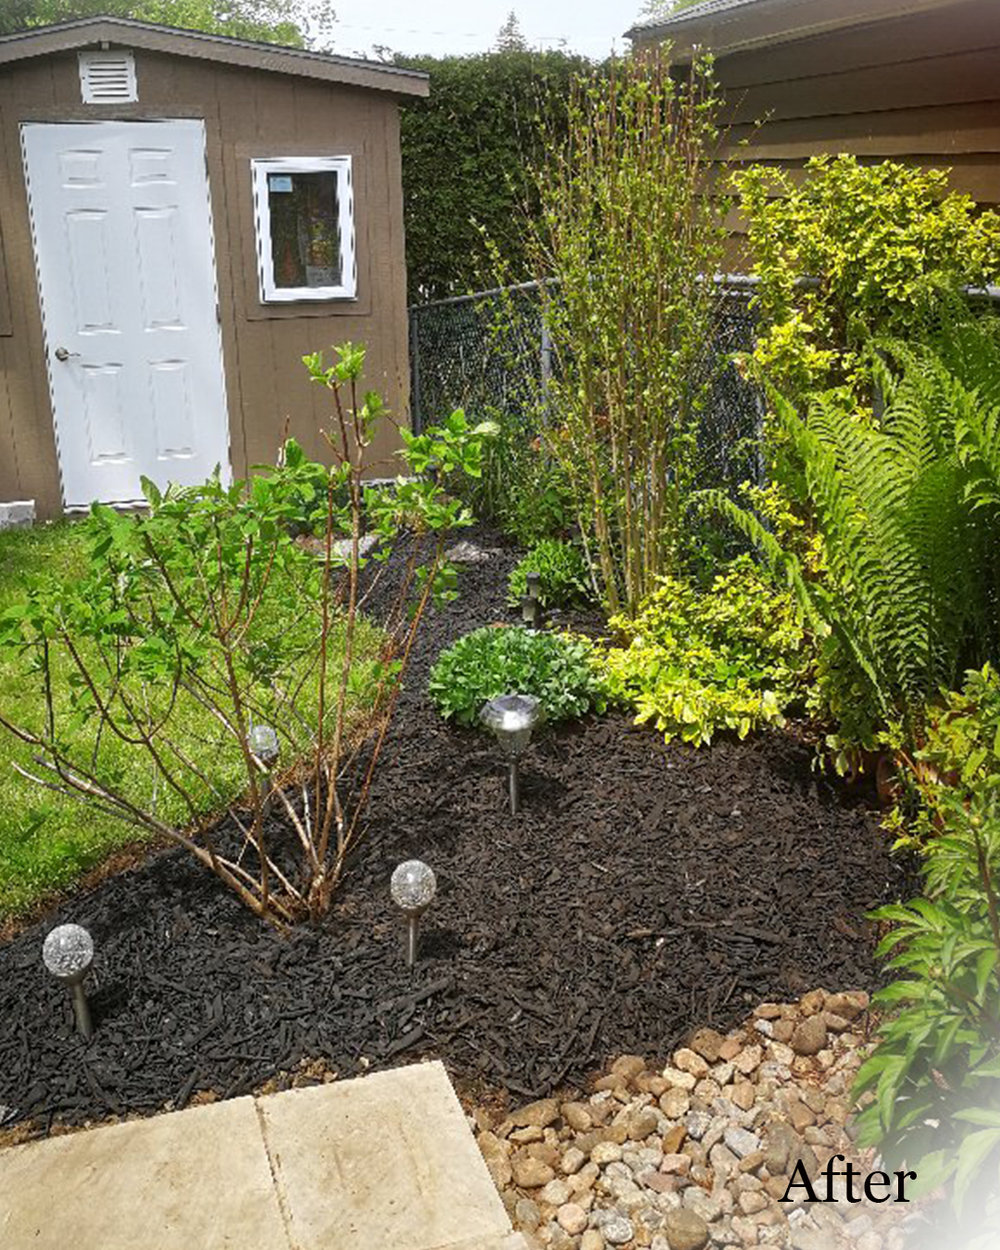 Spring Clean-up - Let us prepare your gardens for the summer by tidying the beds, pruning shrubs (time appropriate) and re-edging.